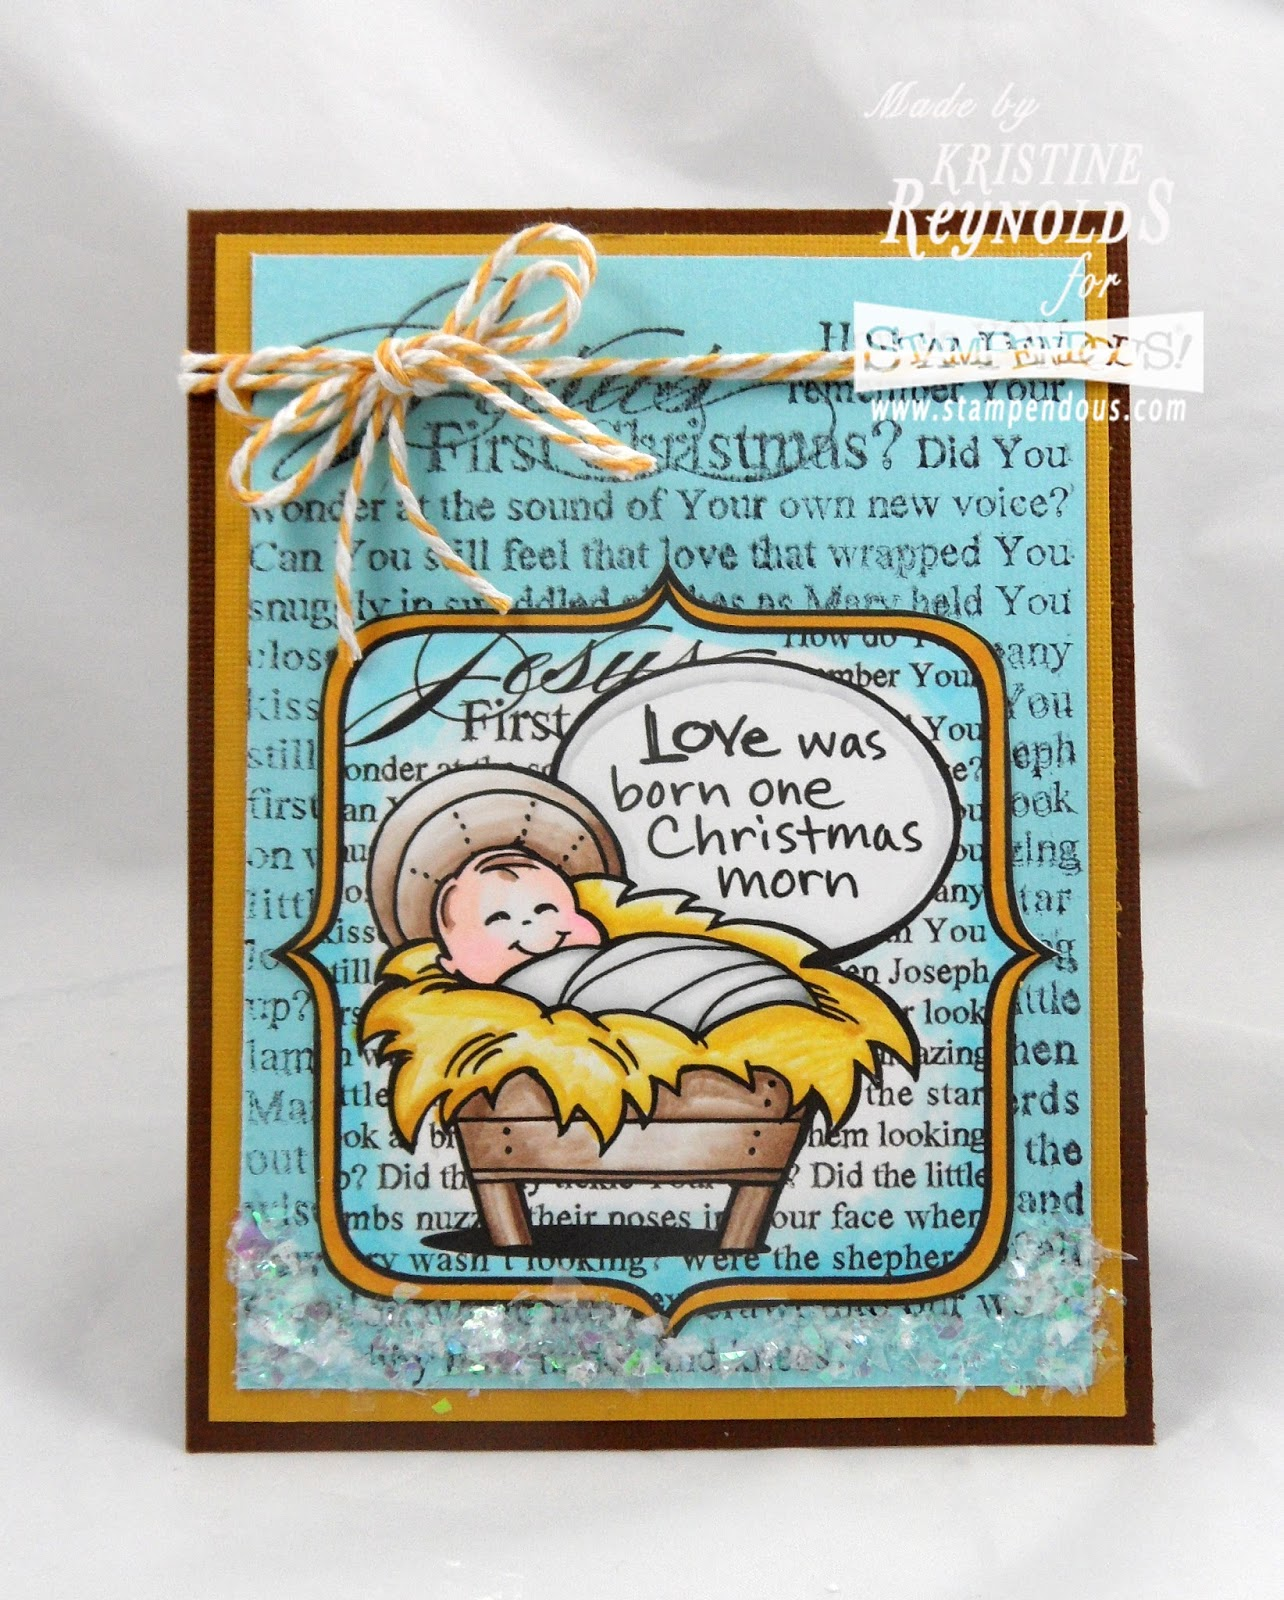 Stamping & Scrapping In California: Love Was Born